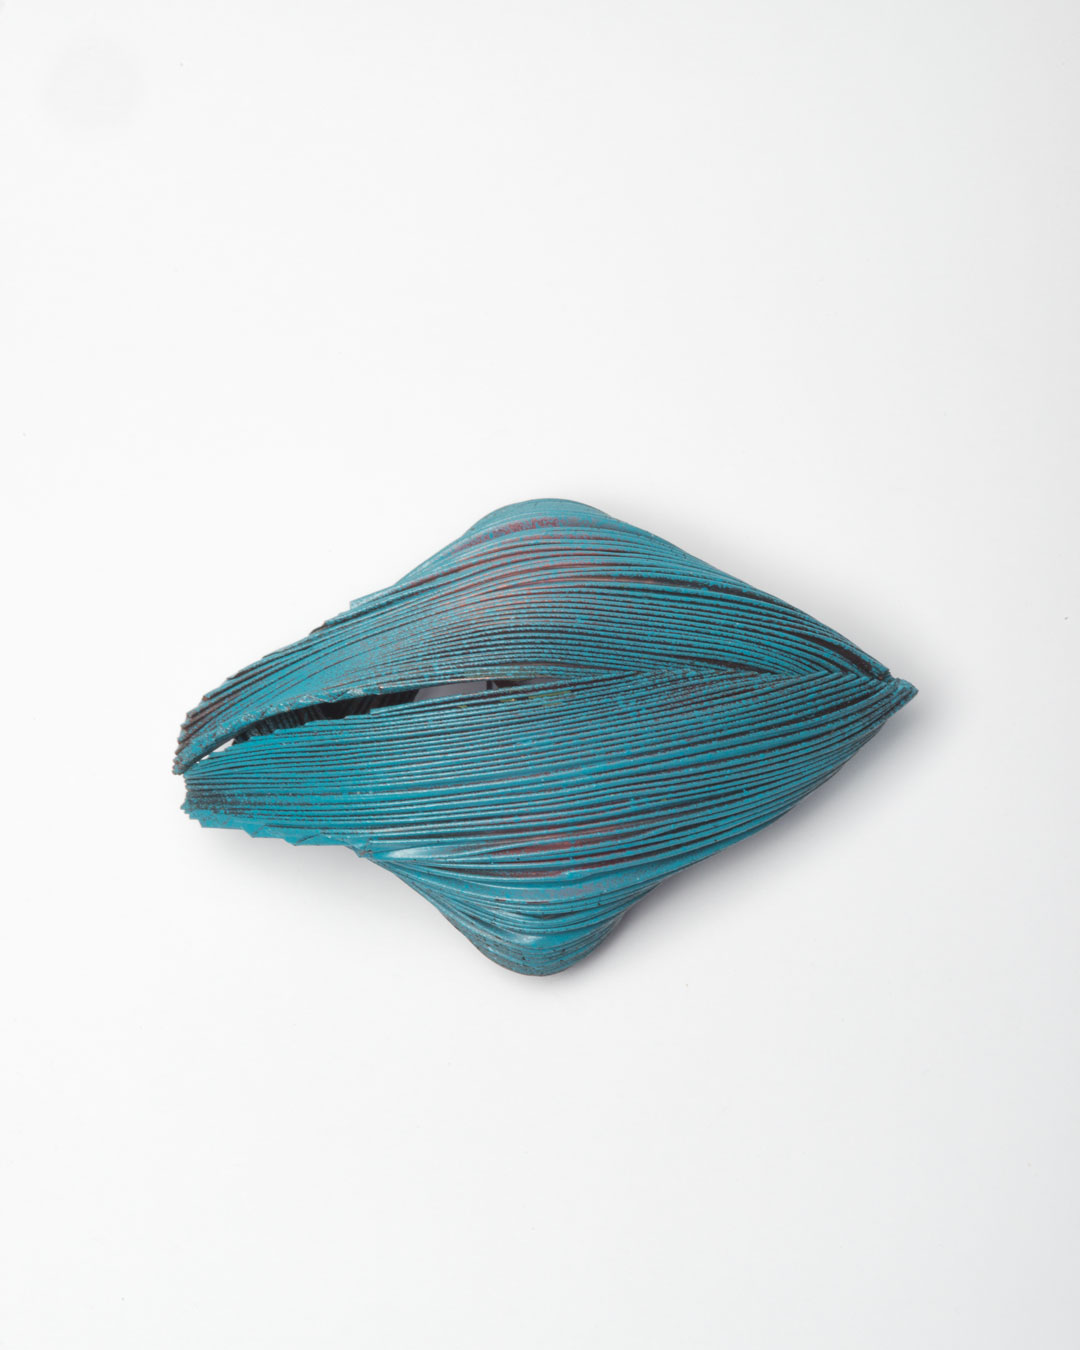 Li Liang, Nr. 7: Line, 2018, brooch; copper, 100 x 80 x 60 mm,€1650